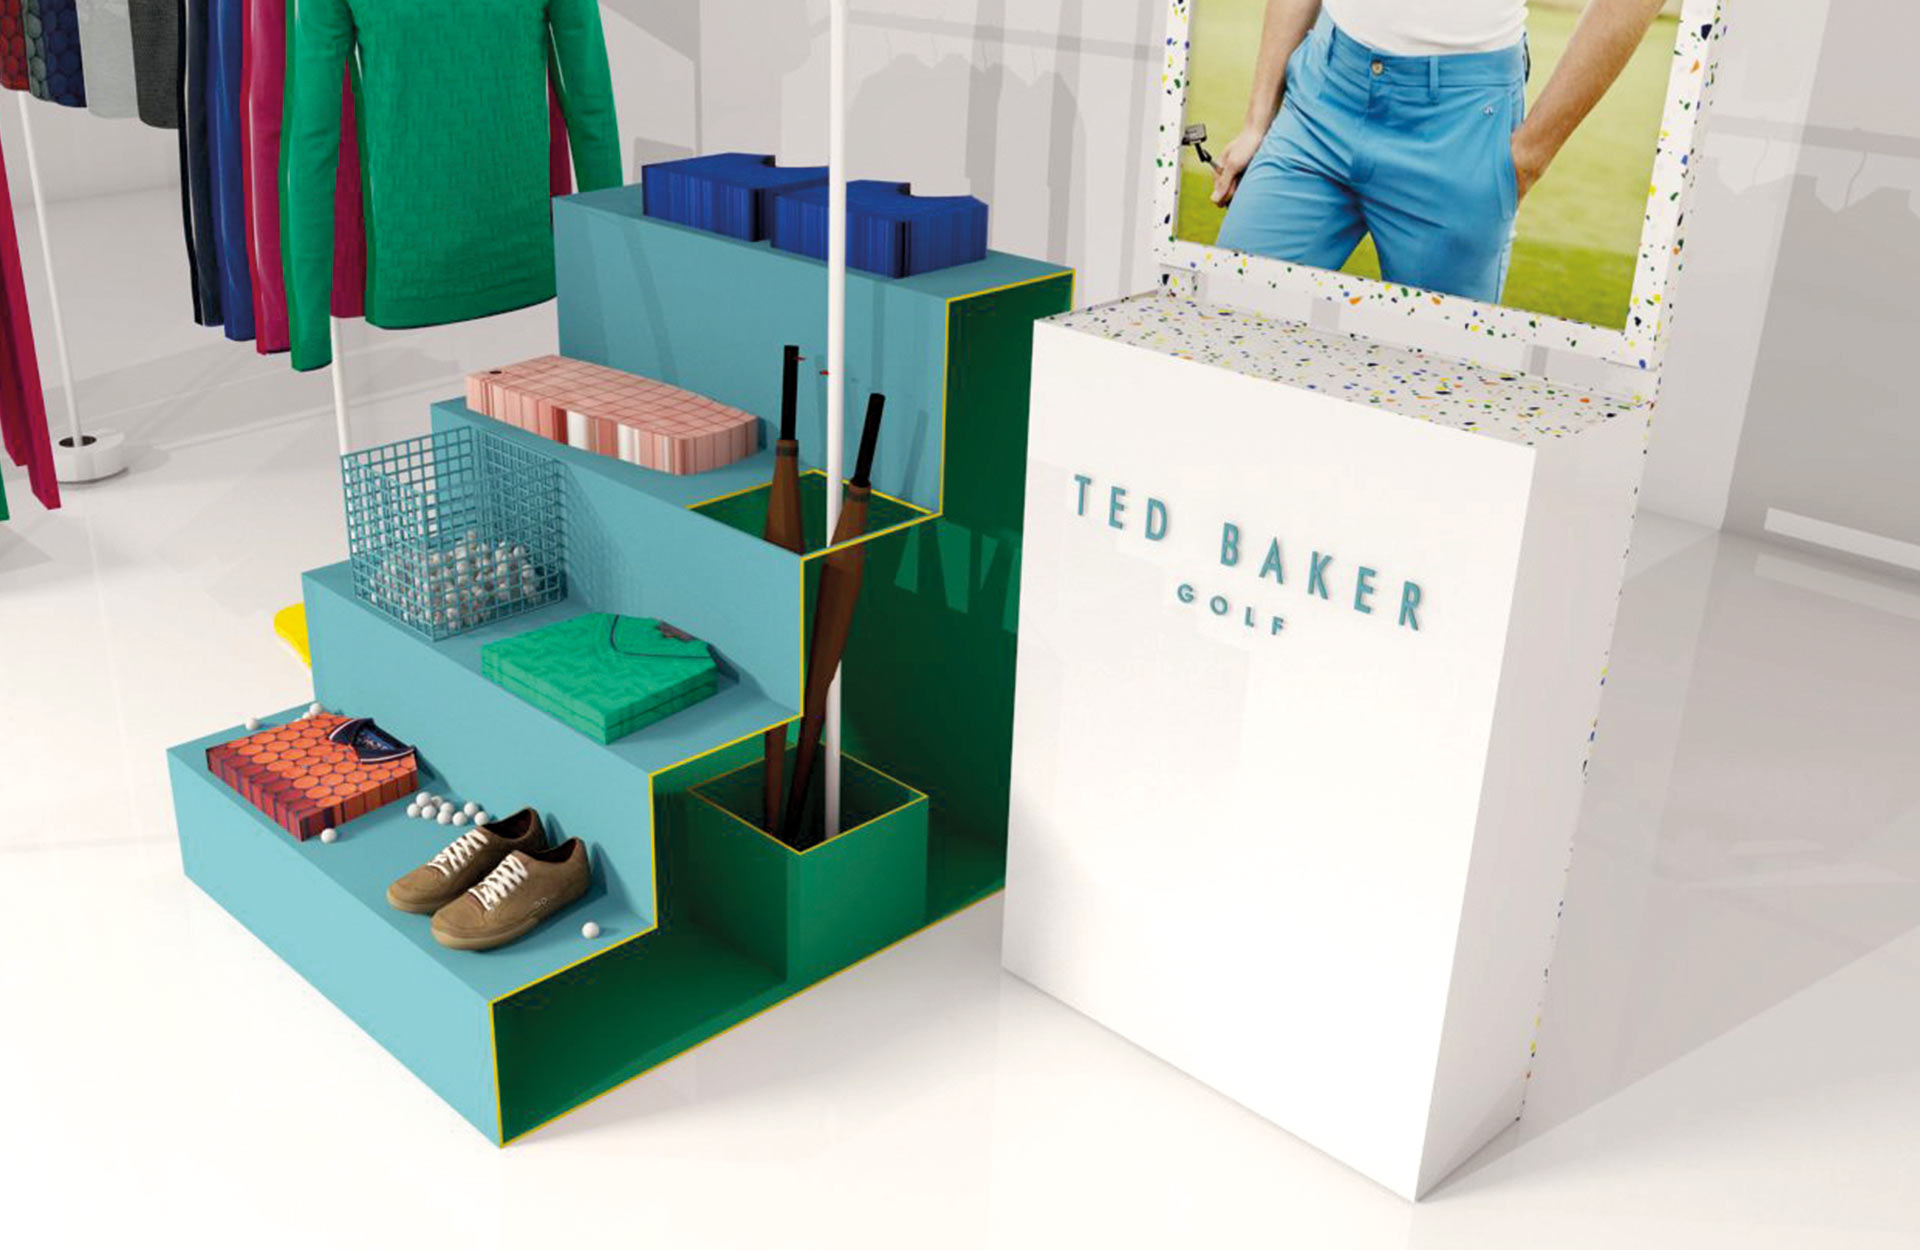 a6c035ffaaa788 Ted Baker Golf Pop Up - Harlequin Design